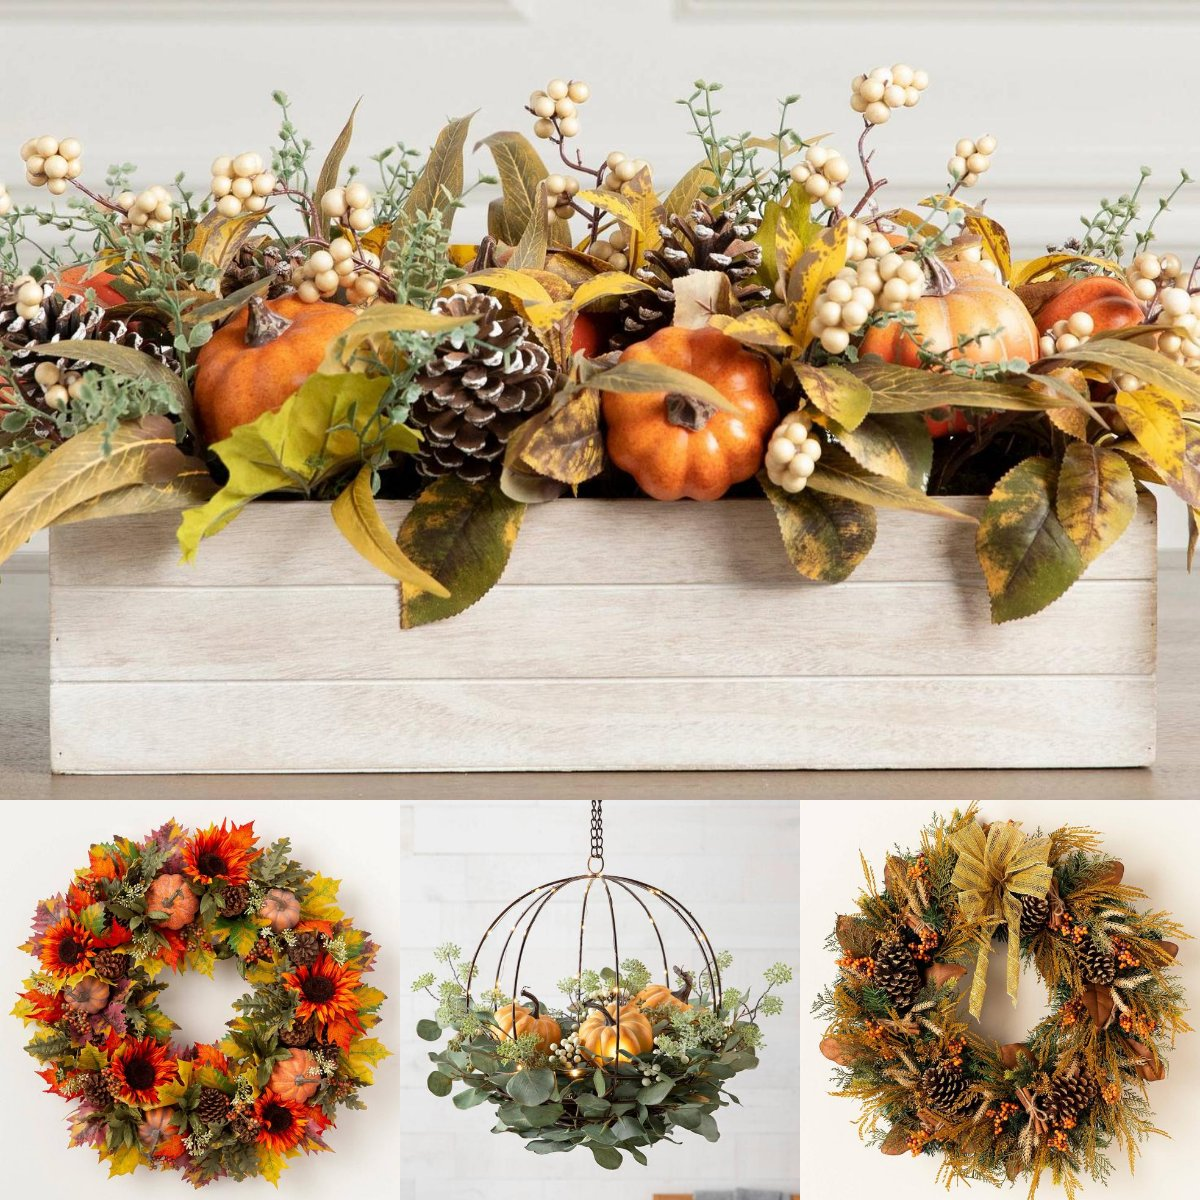 Balsam Hill On Twitter New Colors To Celebrate This Fall Https T Co Ln7jbdlgm3 Balsamhill Fall Top Autumn Abundance Centerpiece L R Sunflower Pumpkin Wreath Eucalyptus Pumpkin Hanging Basket Golden Fields Wreath Https T Co